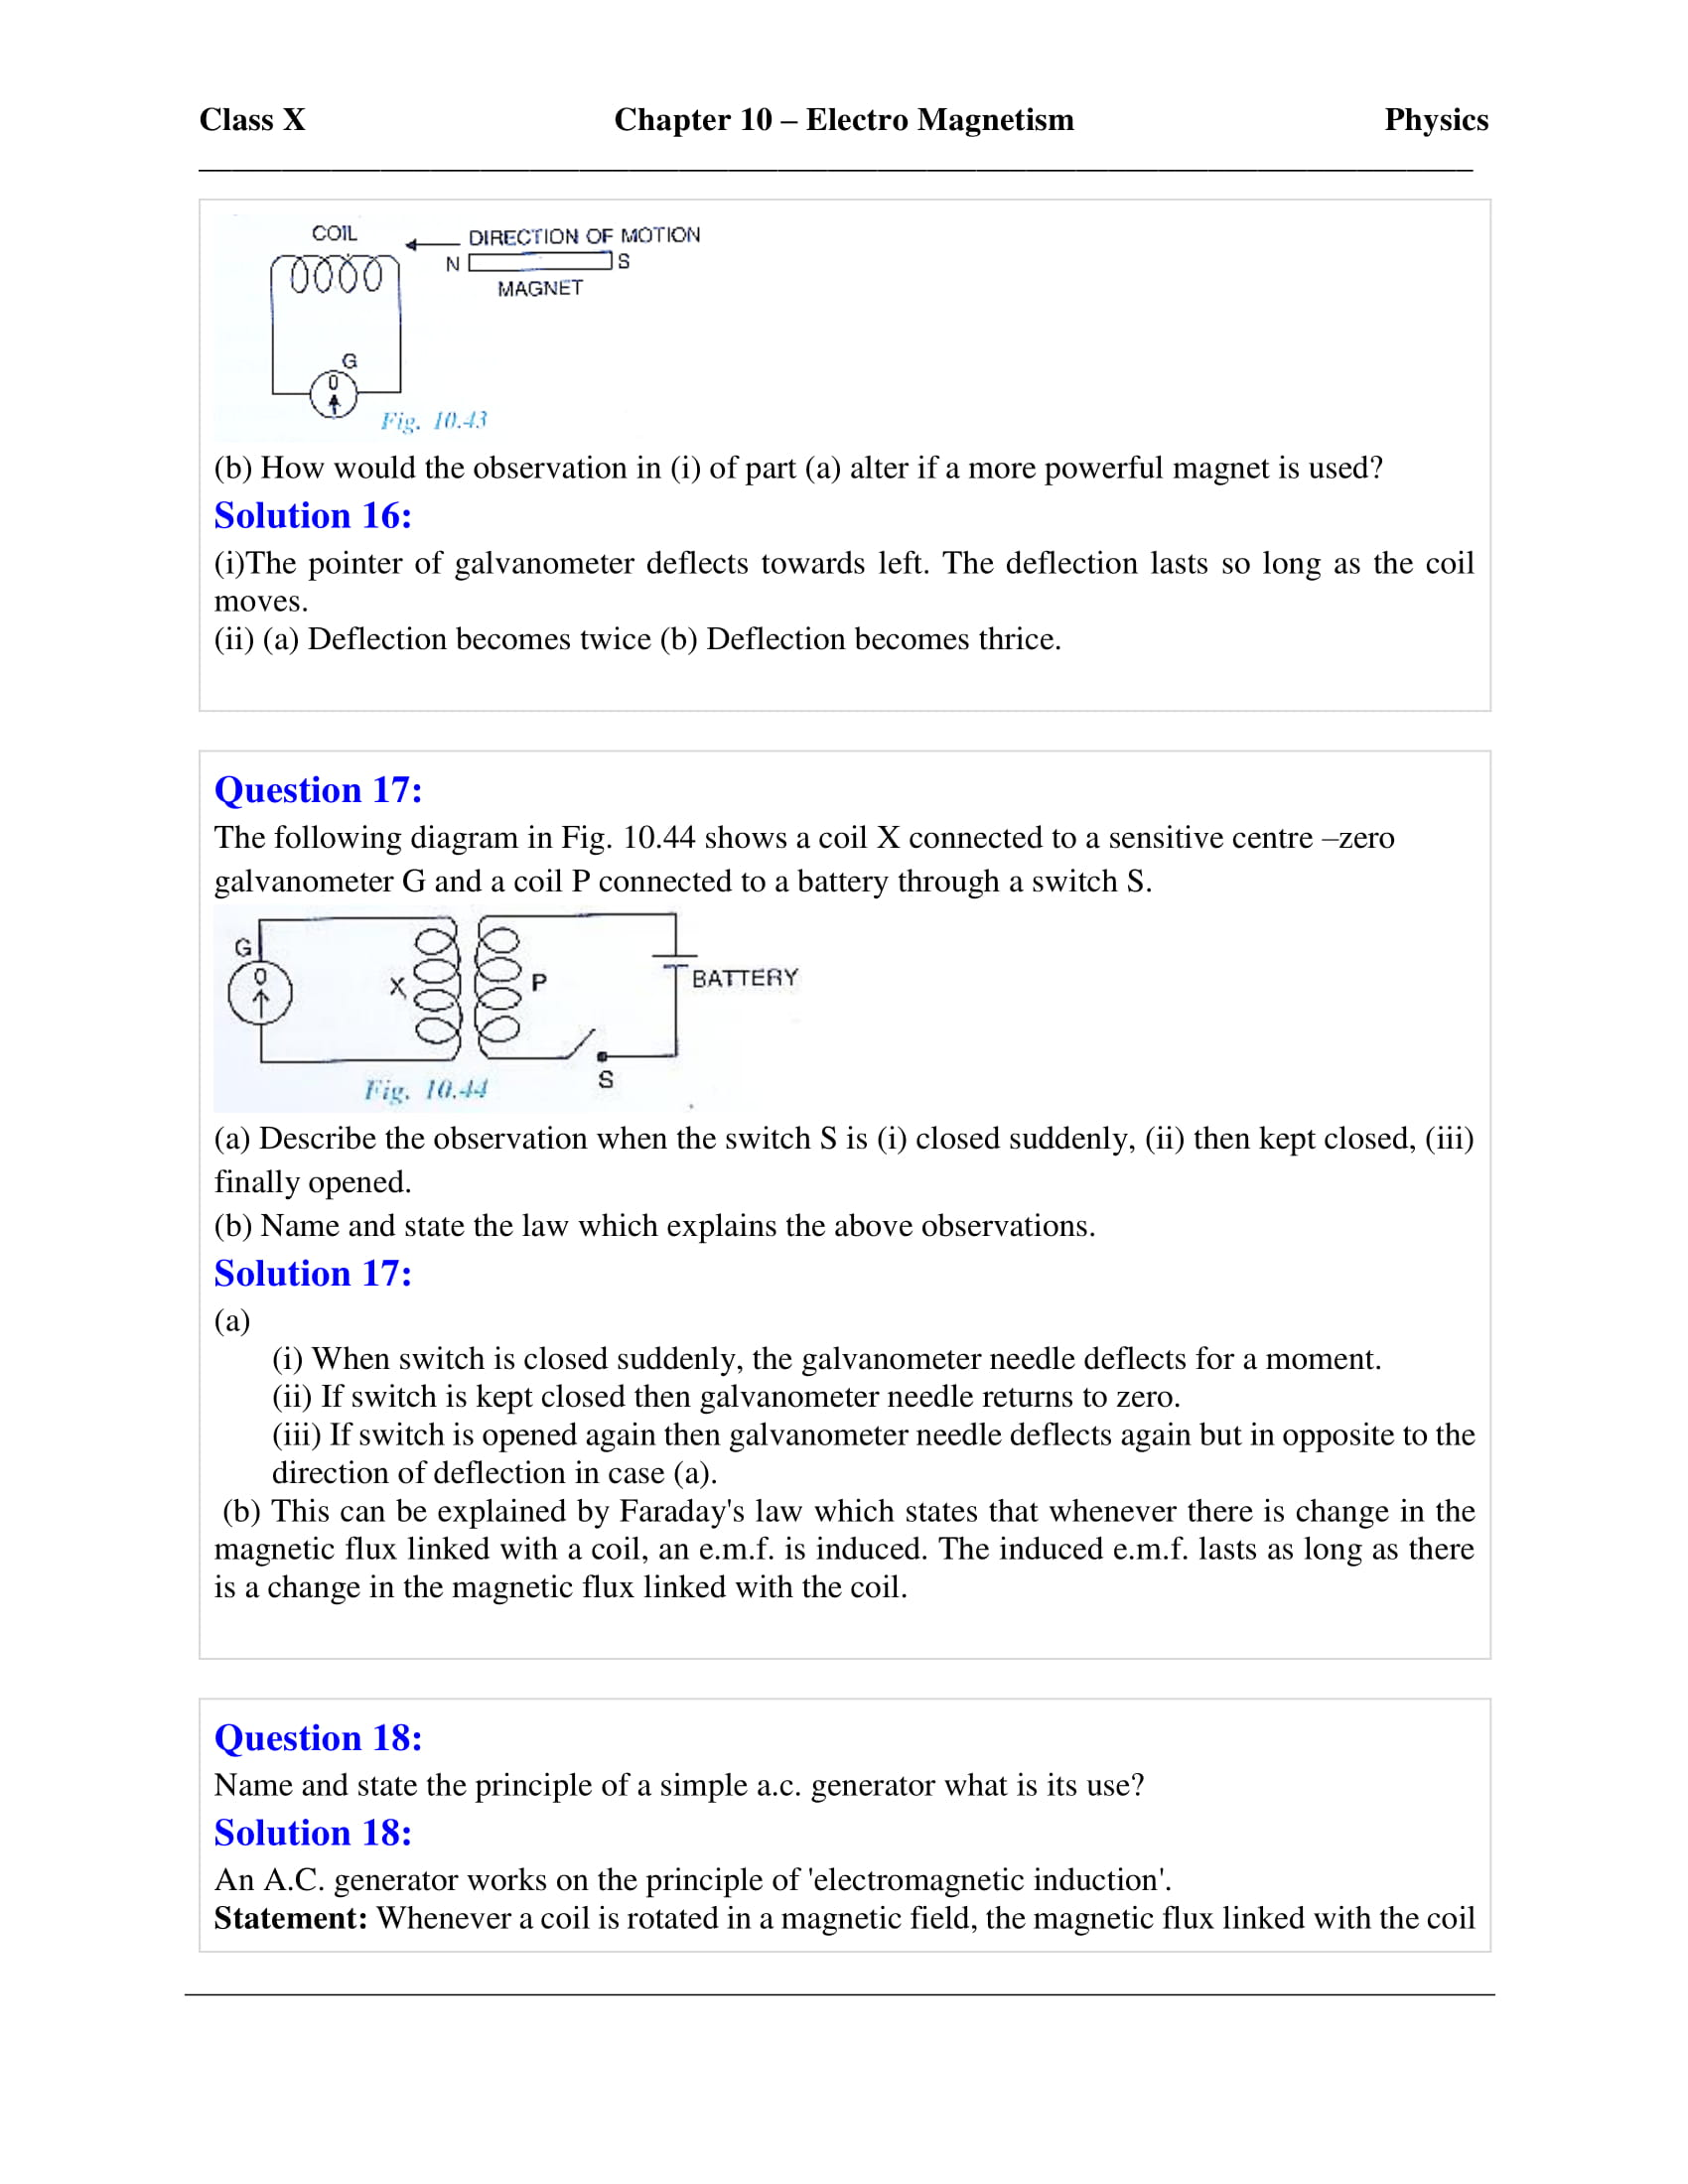 icse-selina-physics-solutions-class-10-chapter-10-electro-magnetism-22